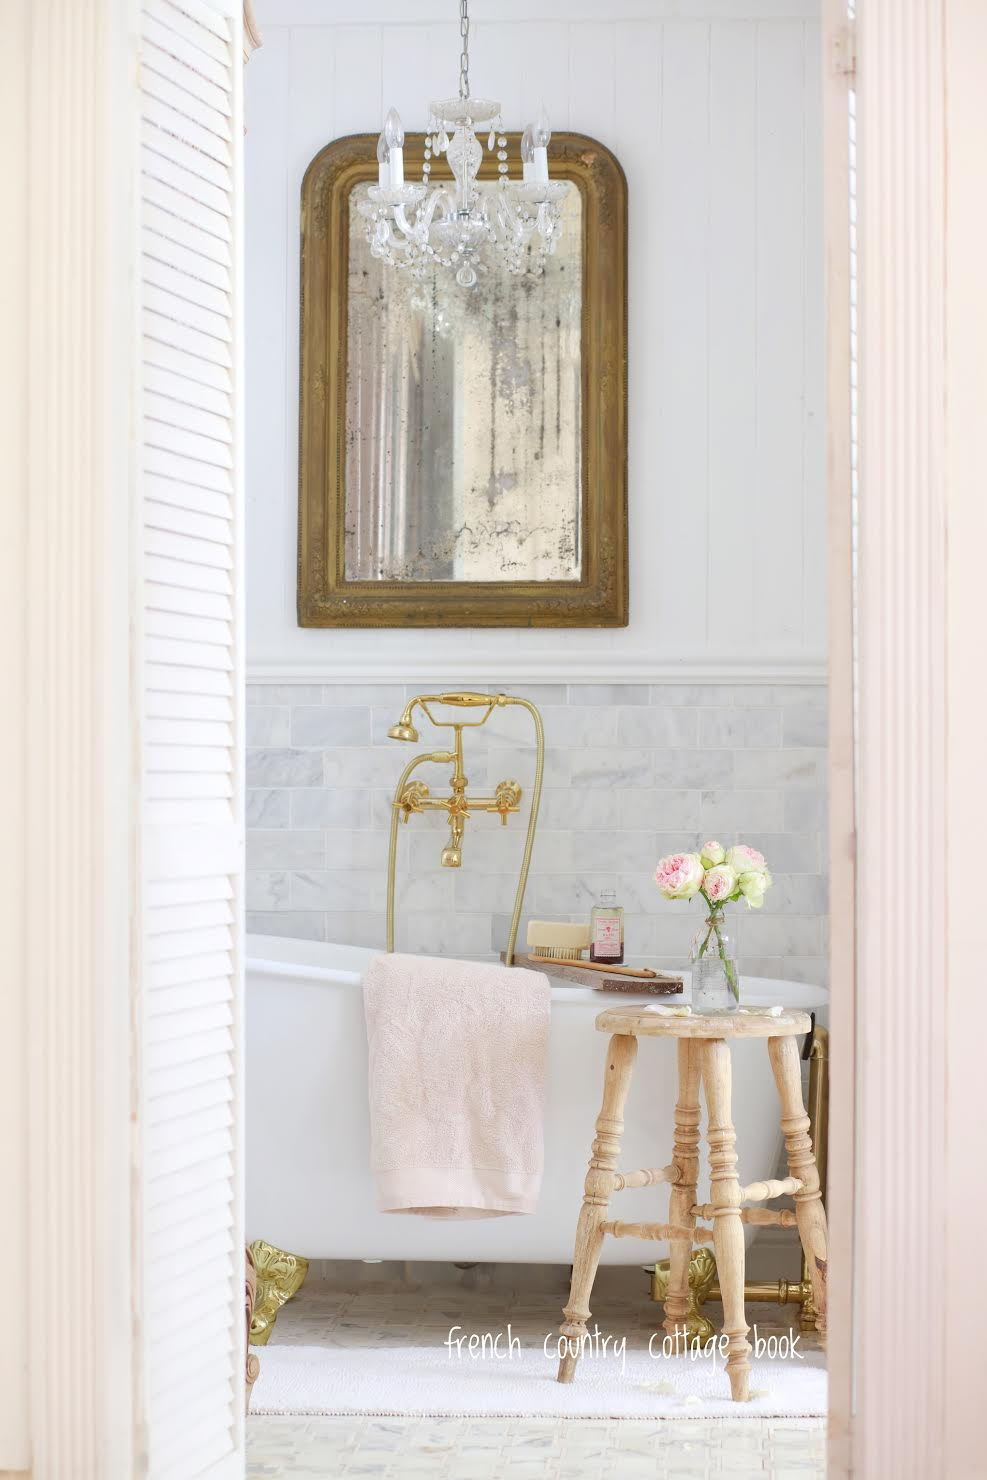 5 minute decorating- Five ways to style your bathroom for ...